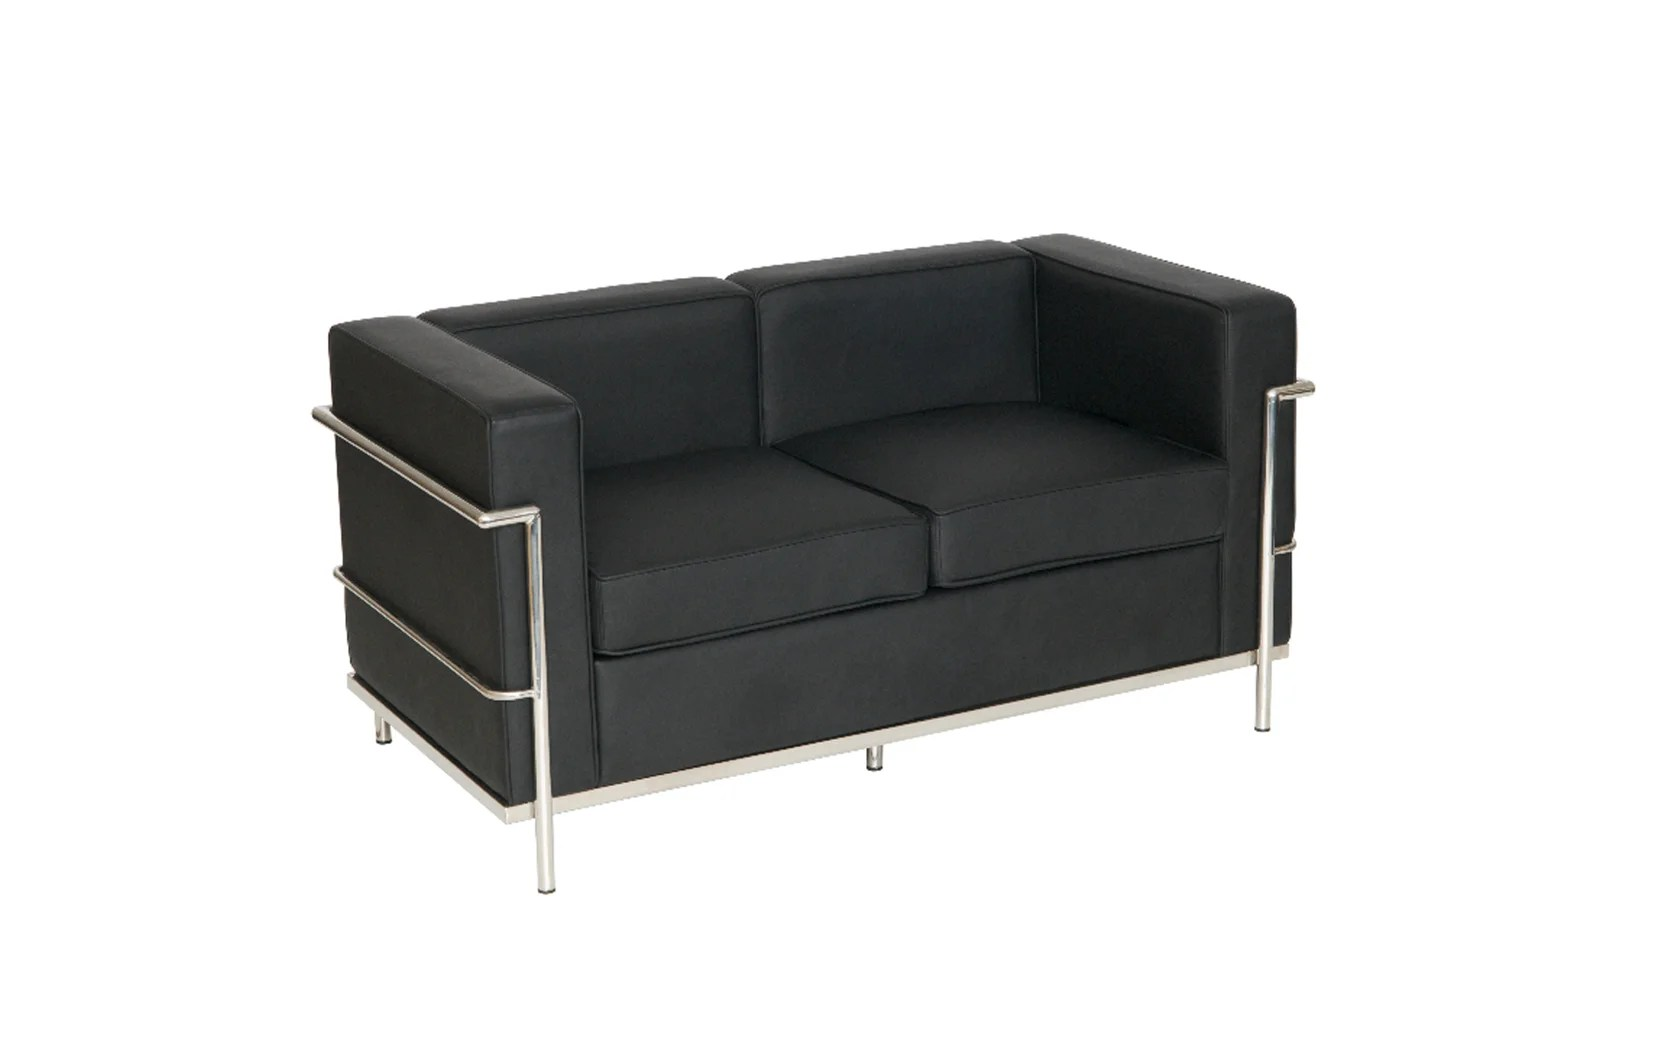 Sofa Le Corbusier Le Corbusier Style Two Seater Sofa (sj009-2) - Somercotes ...